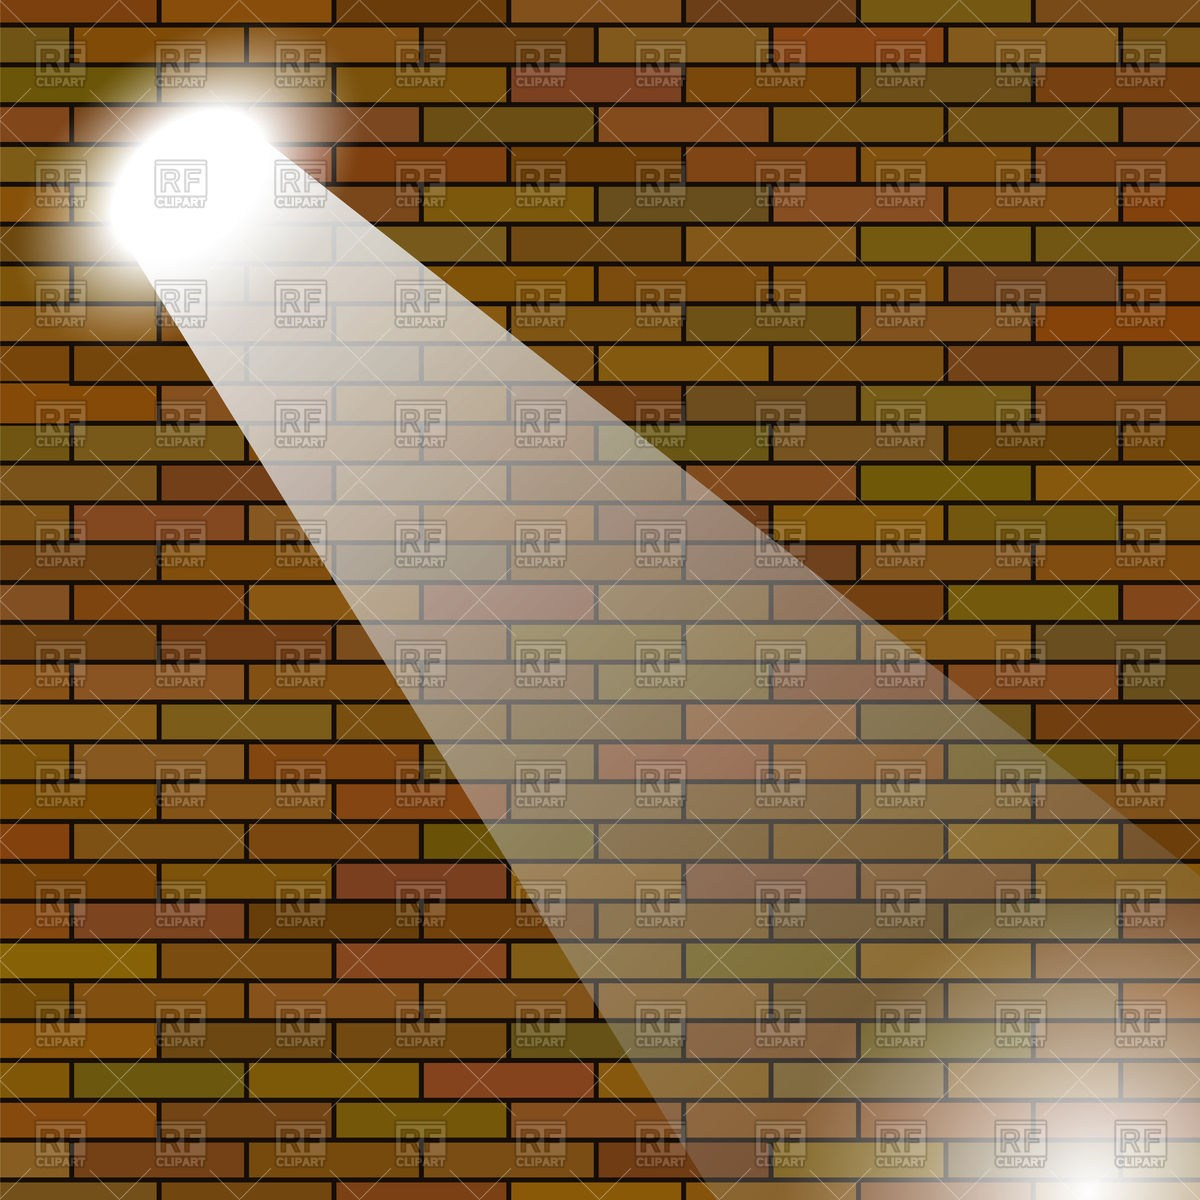 Beam of light clipart banner stock Beam of light clipart 8 » Clipart Portal banner stock